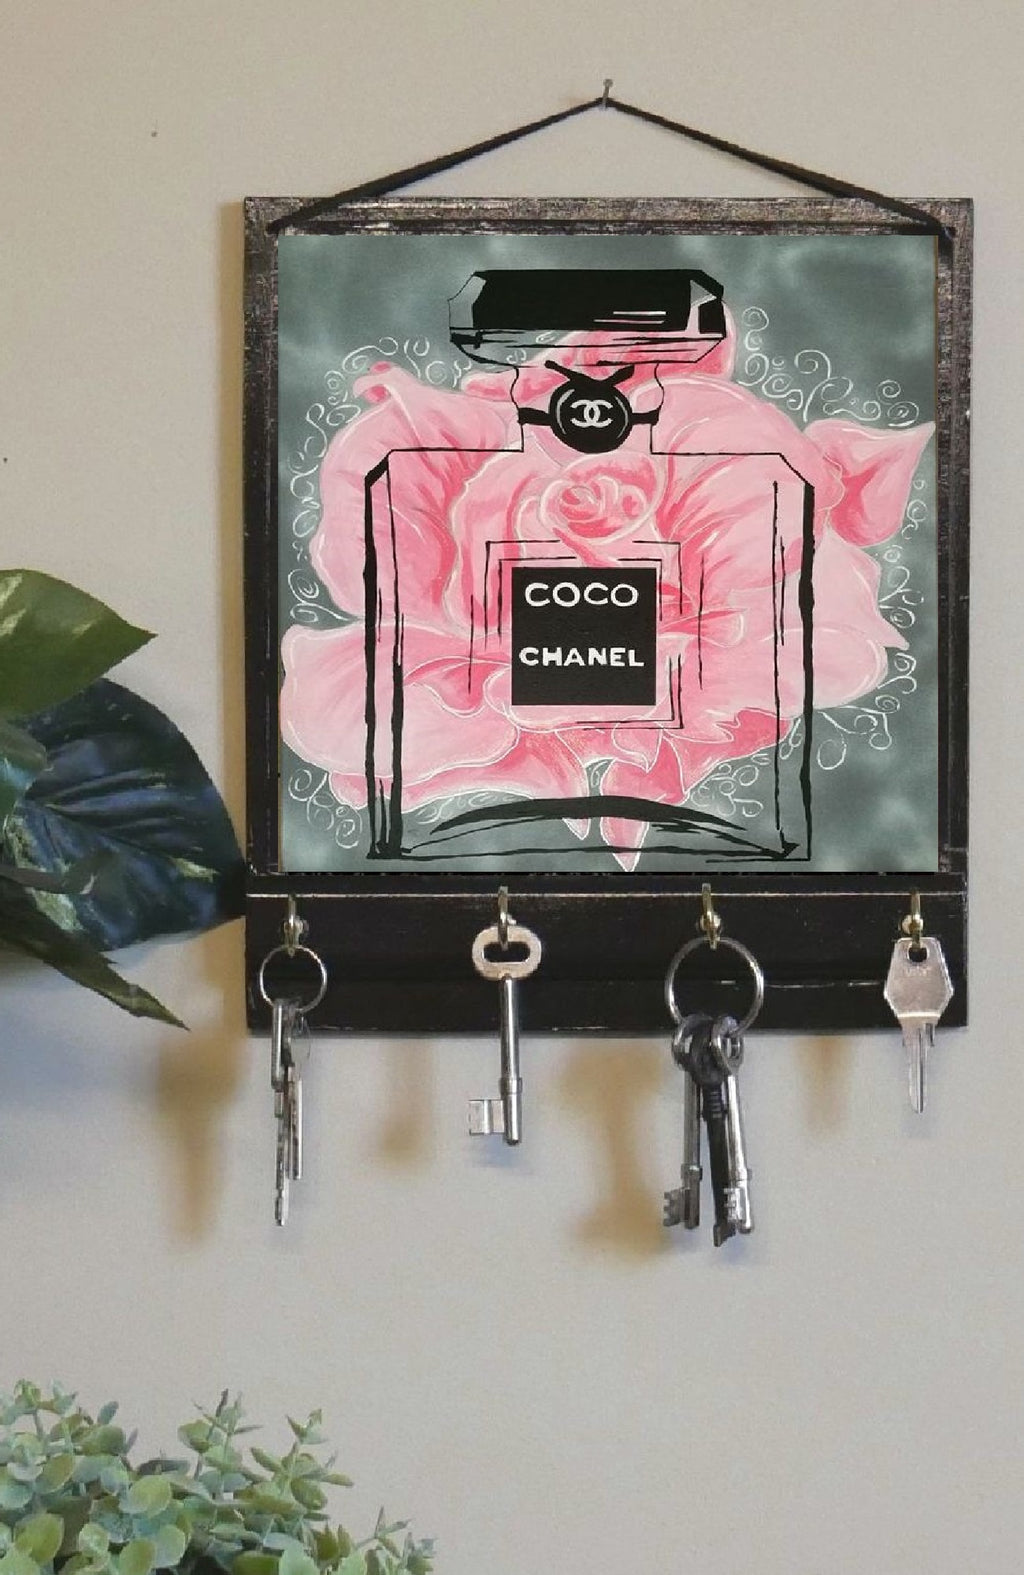 Coco-Chanel-Nchanted-Gifts